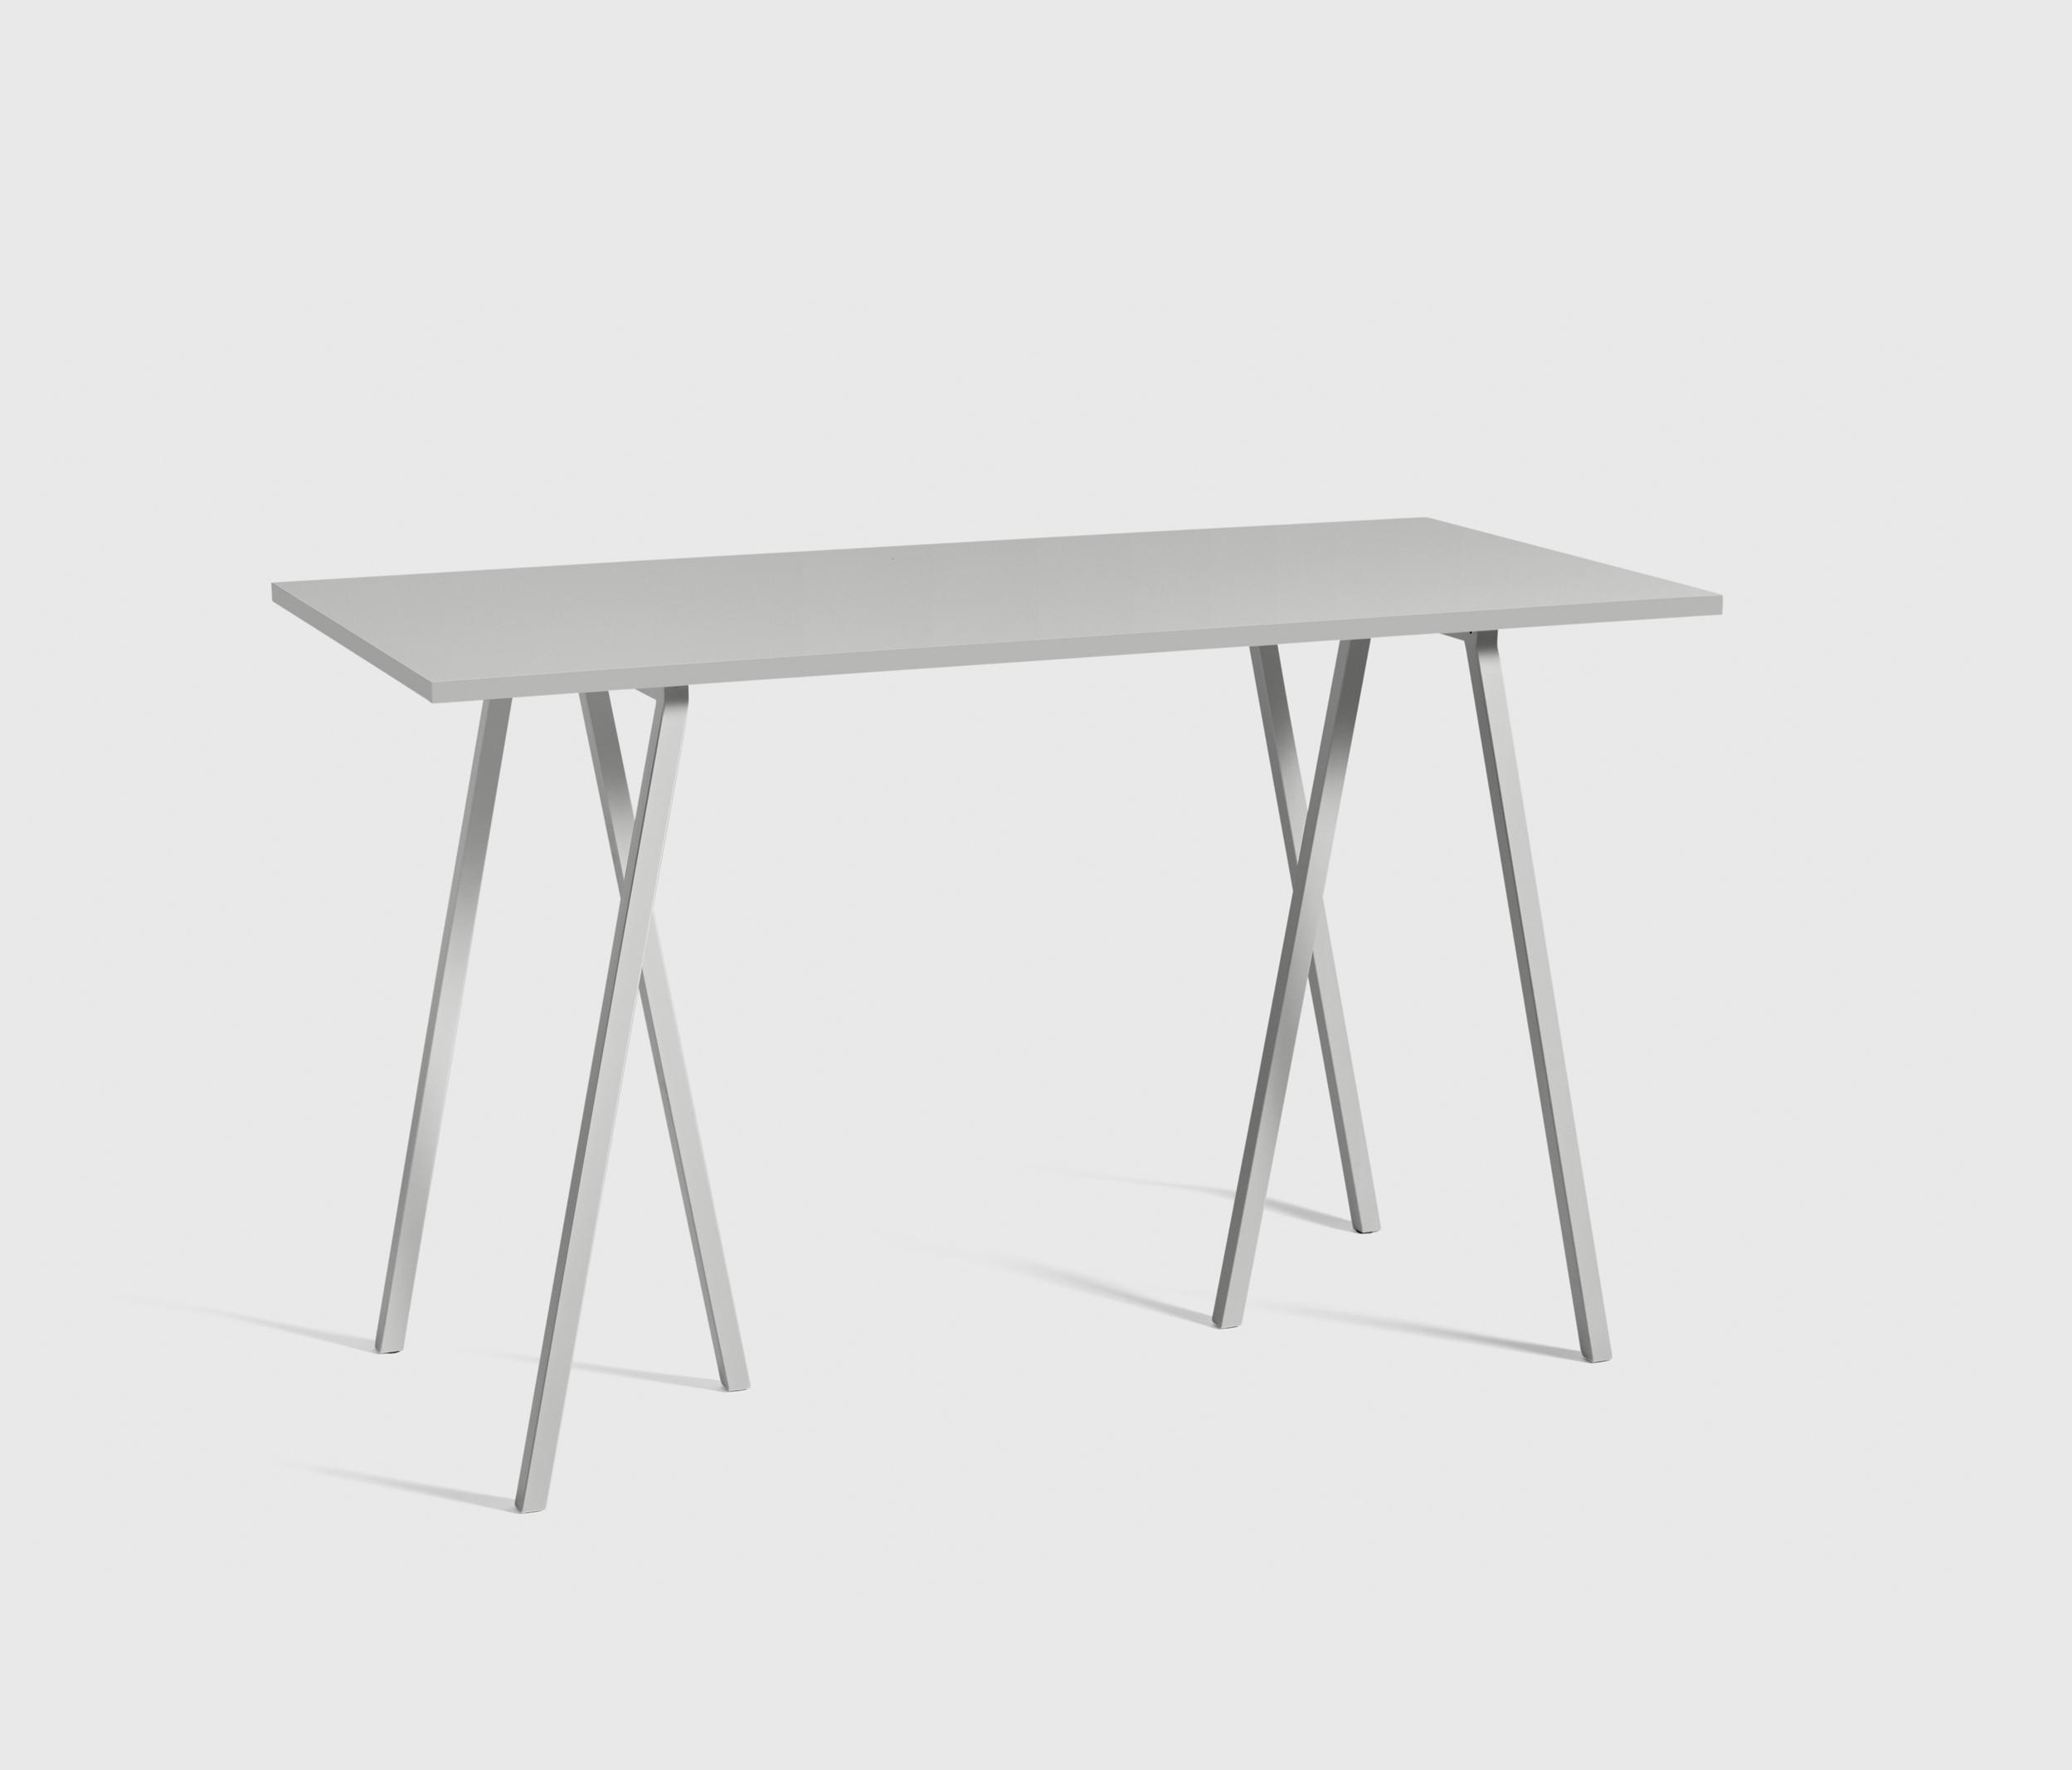 loop stand high table  by hay  bar tables. loop stand high table   bar tables from hay  architonic